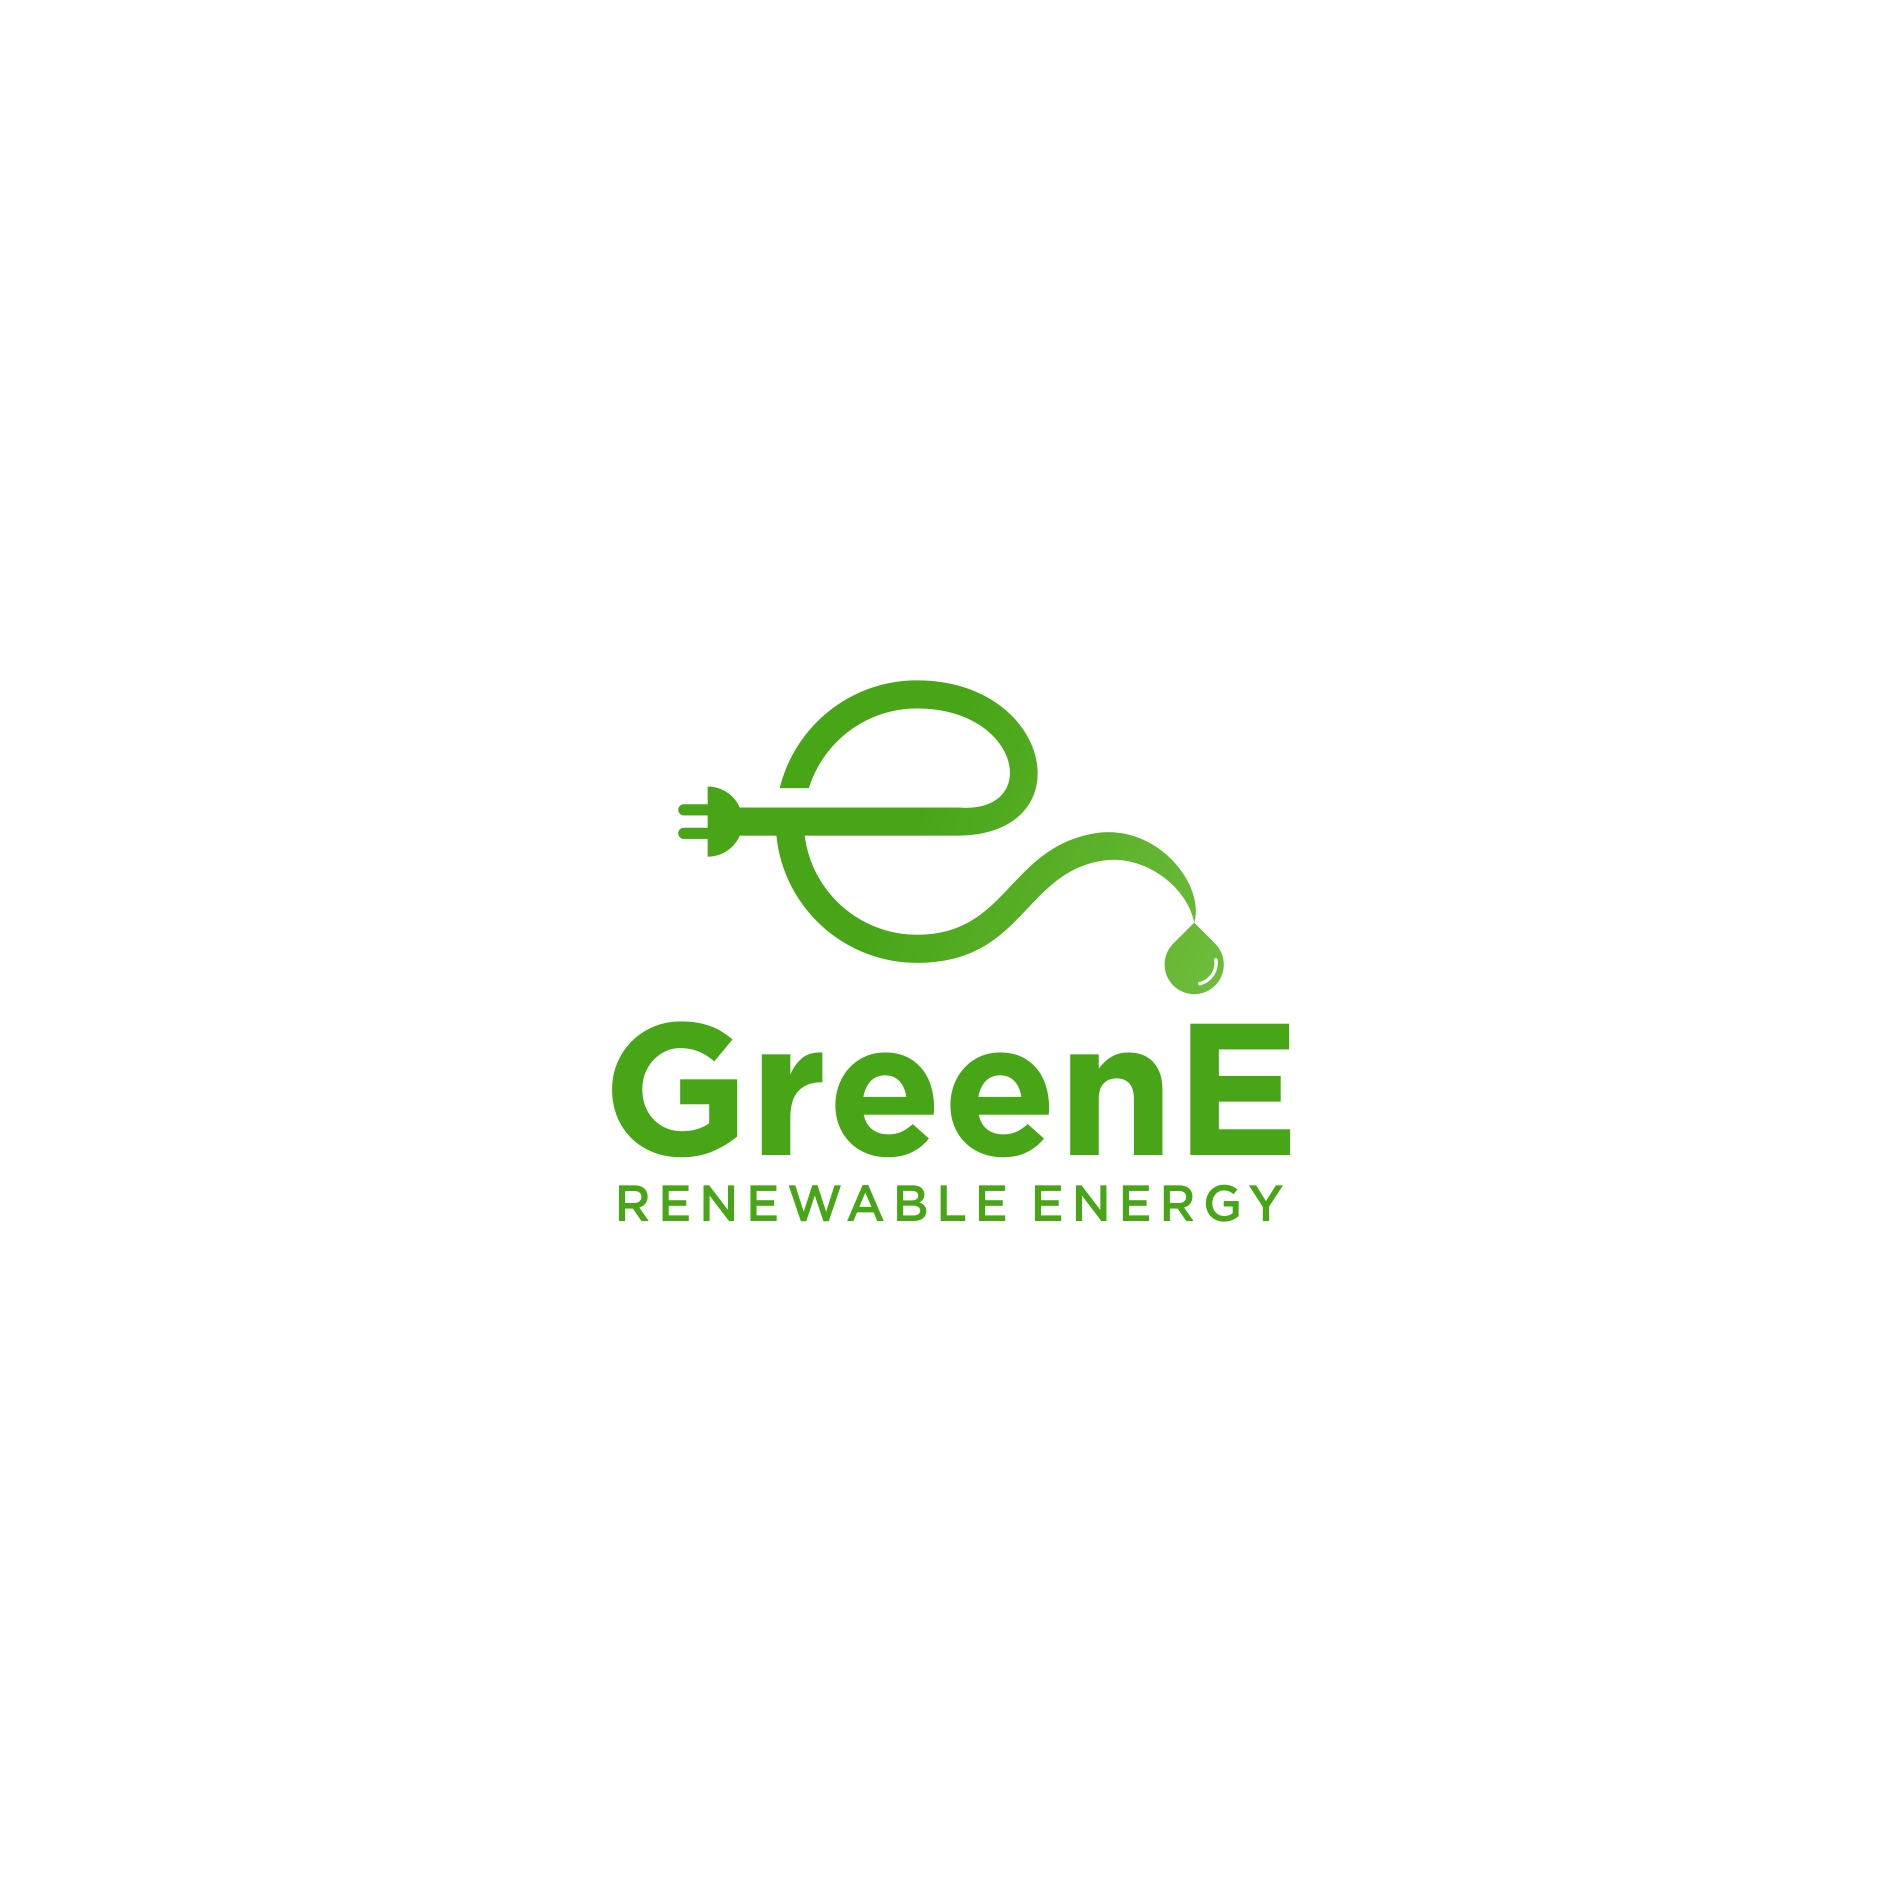 GreenE Renewable Energy